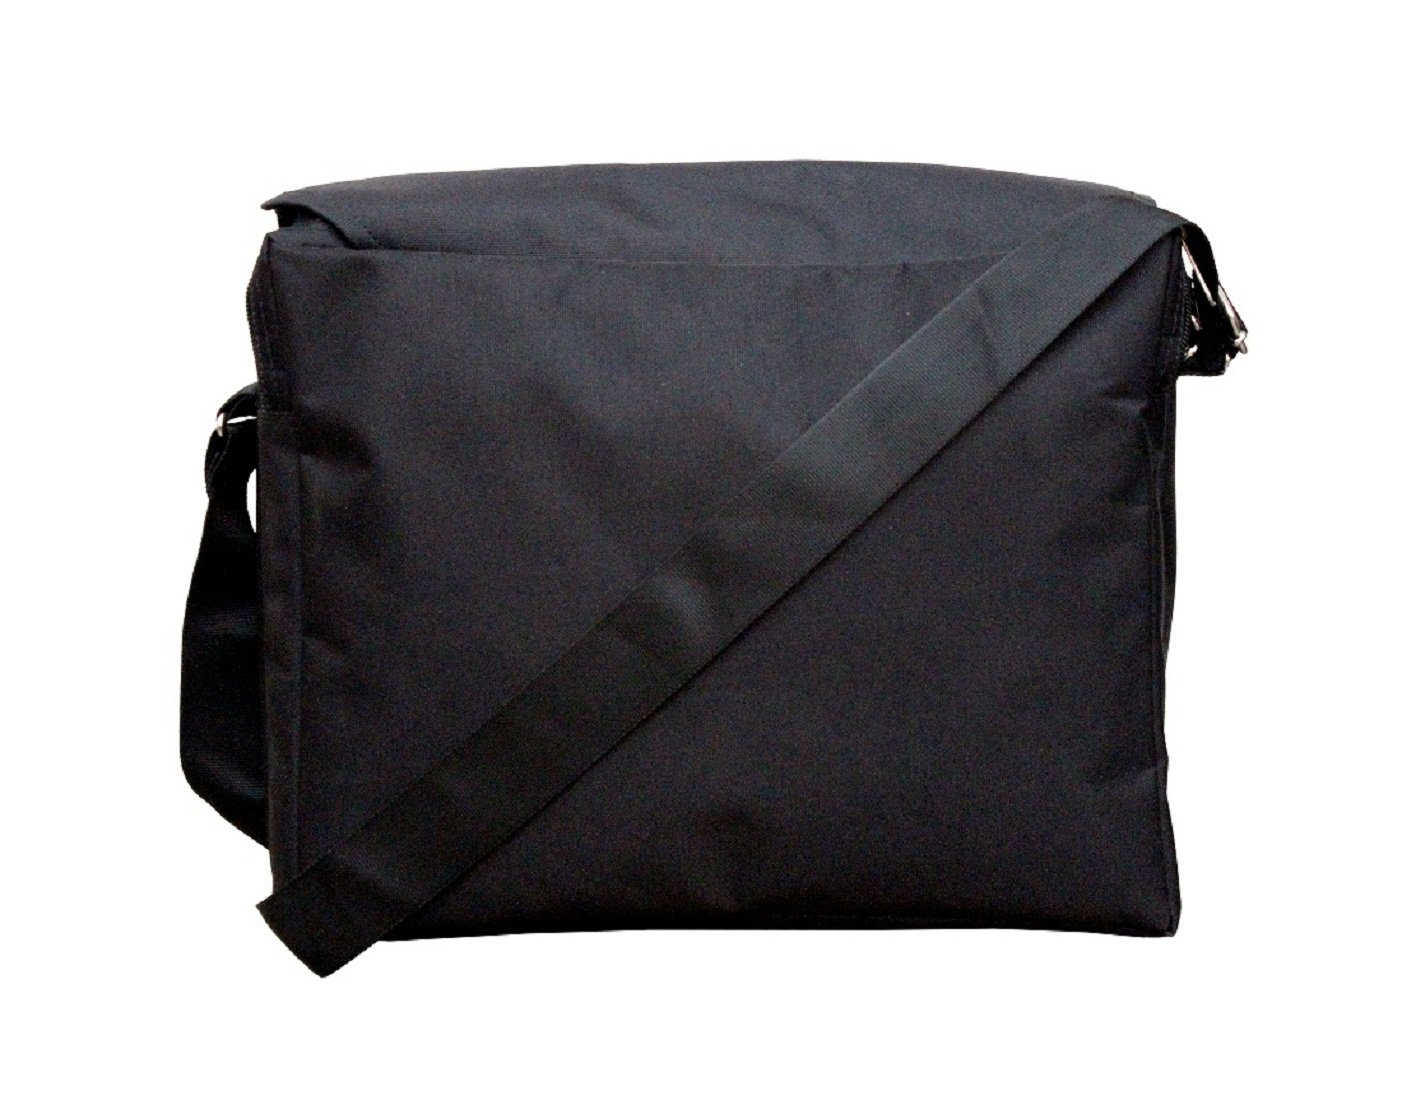 14 Inch Laptop Bag daily use. Black